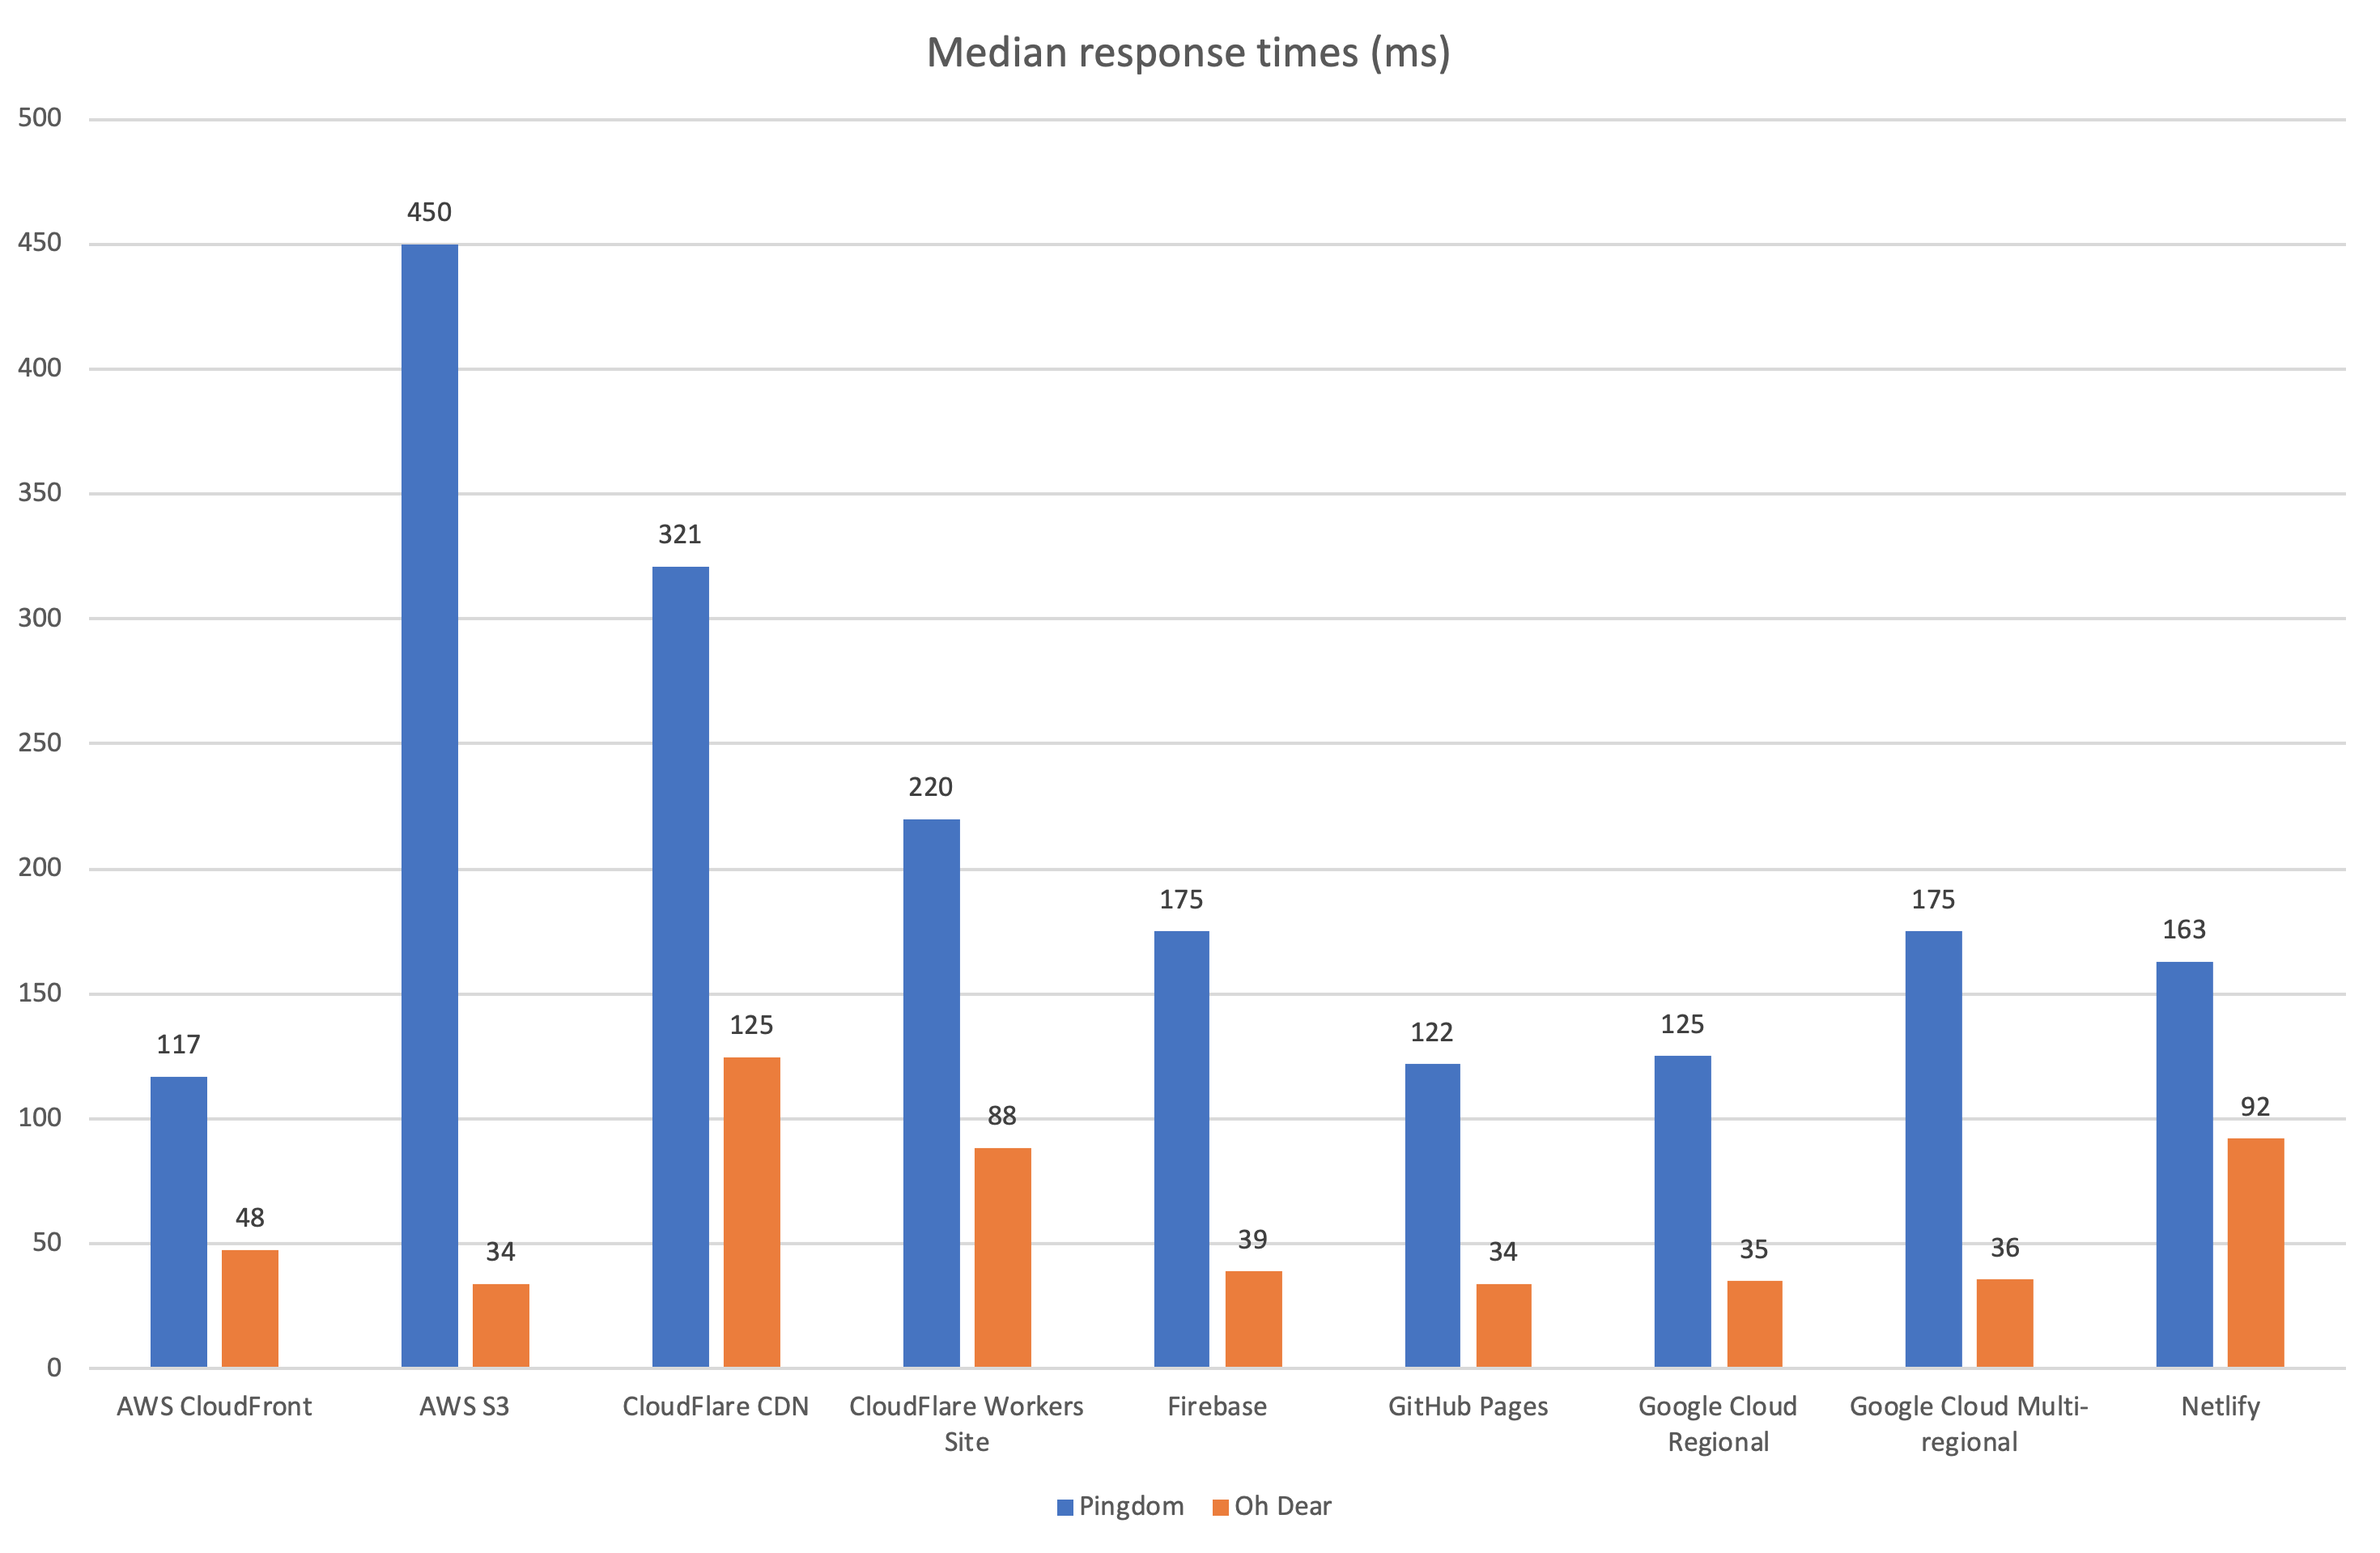 Pingdom vs Oh Dear (median response times)